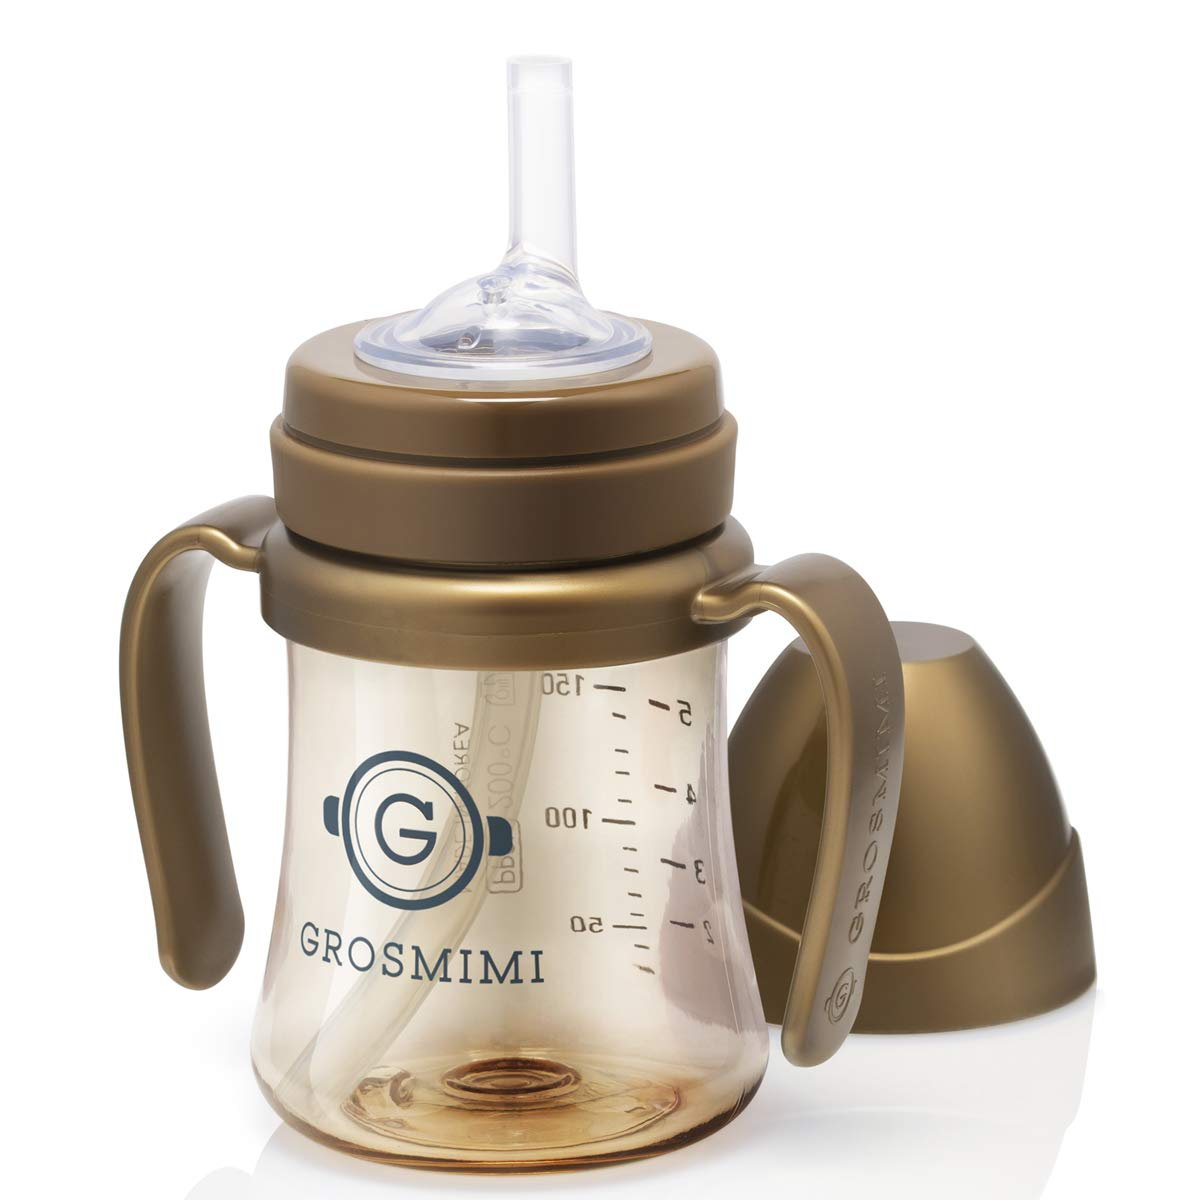 Grosmimi Spill Proof no Spill Magic Sippy Cup with Straw with Handle for Baby and Toddlers, Customizable, PPSU, BPA Free 6 oz (Golden Brown)